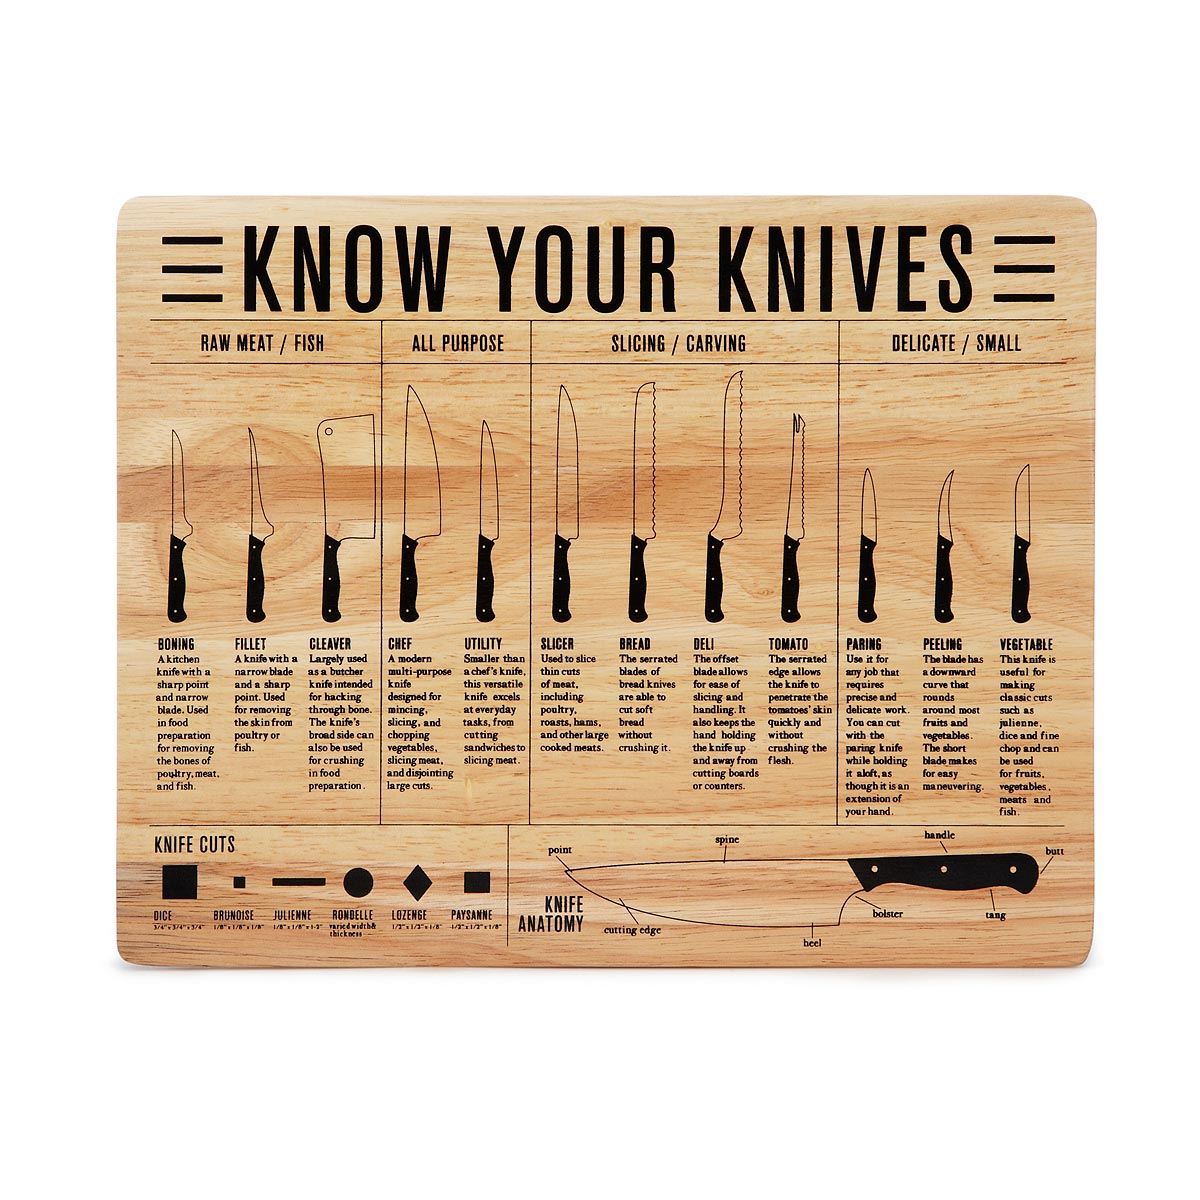 Know Your Knives Cutting Board Kitchen Knife Cutting